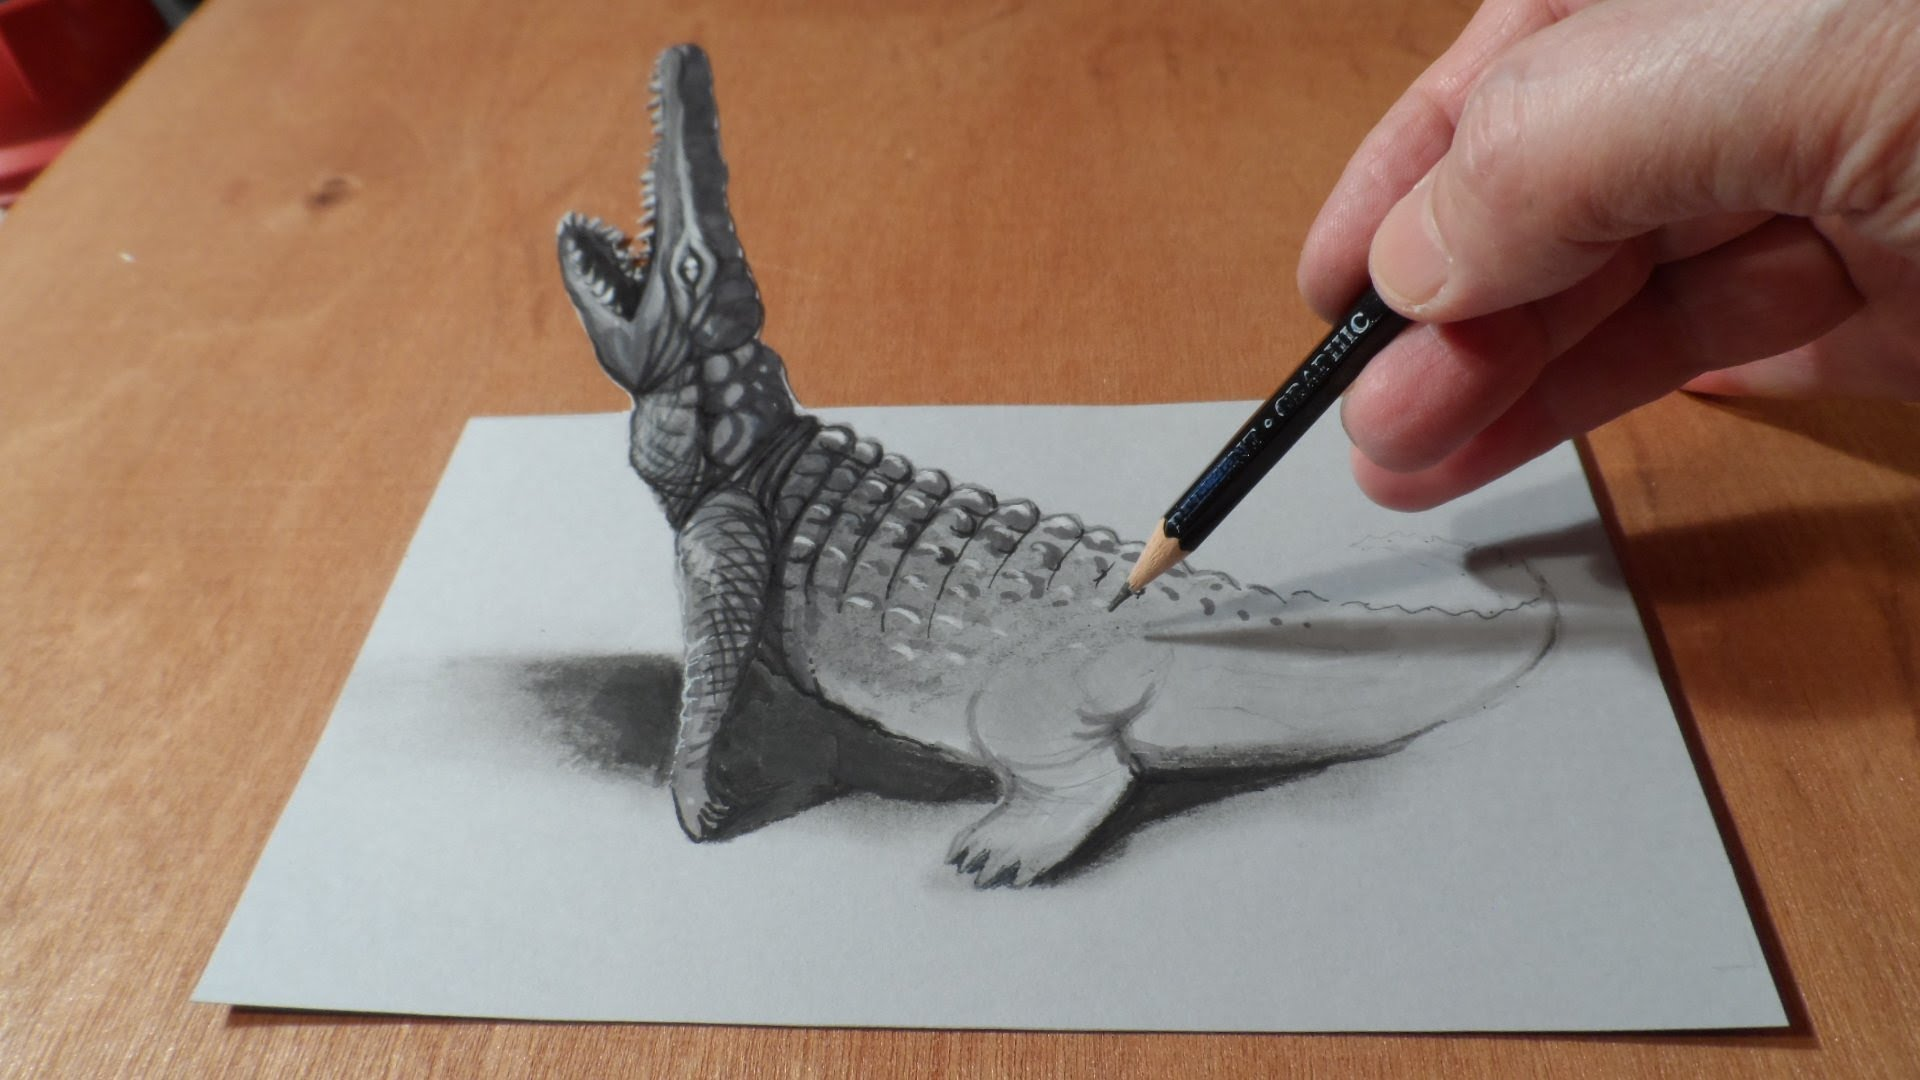 Optical Illusion Art Trick -How to Draw 3D Crocodile Painting?